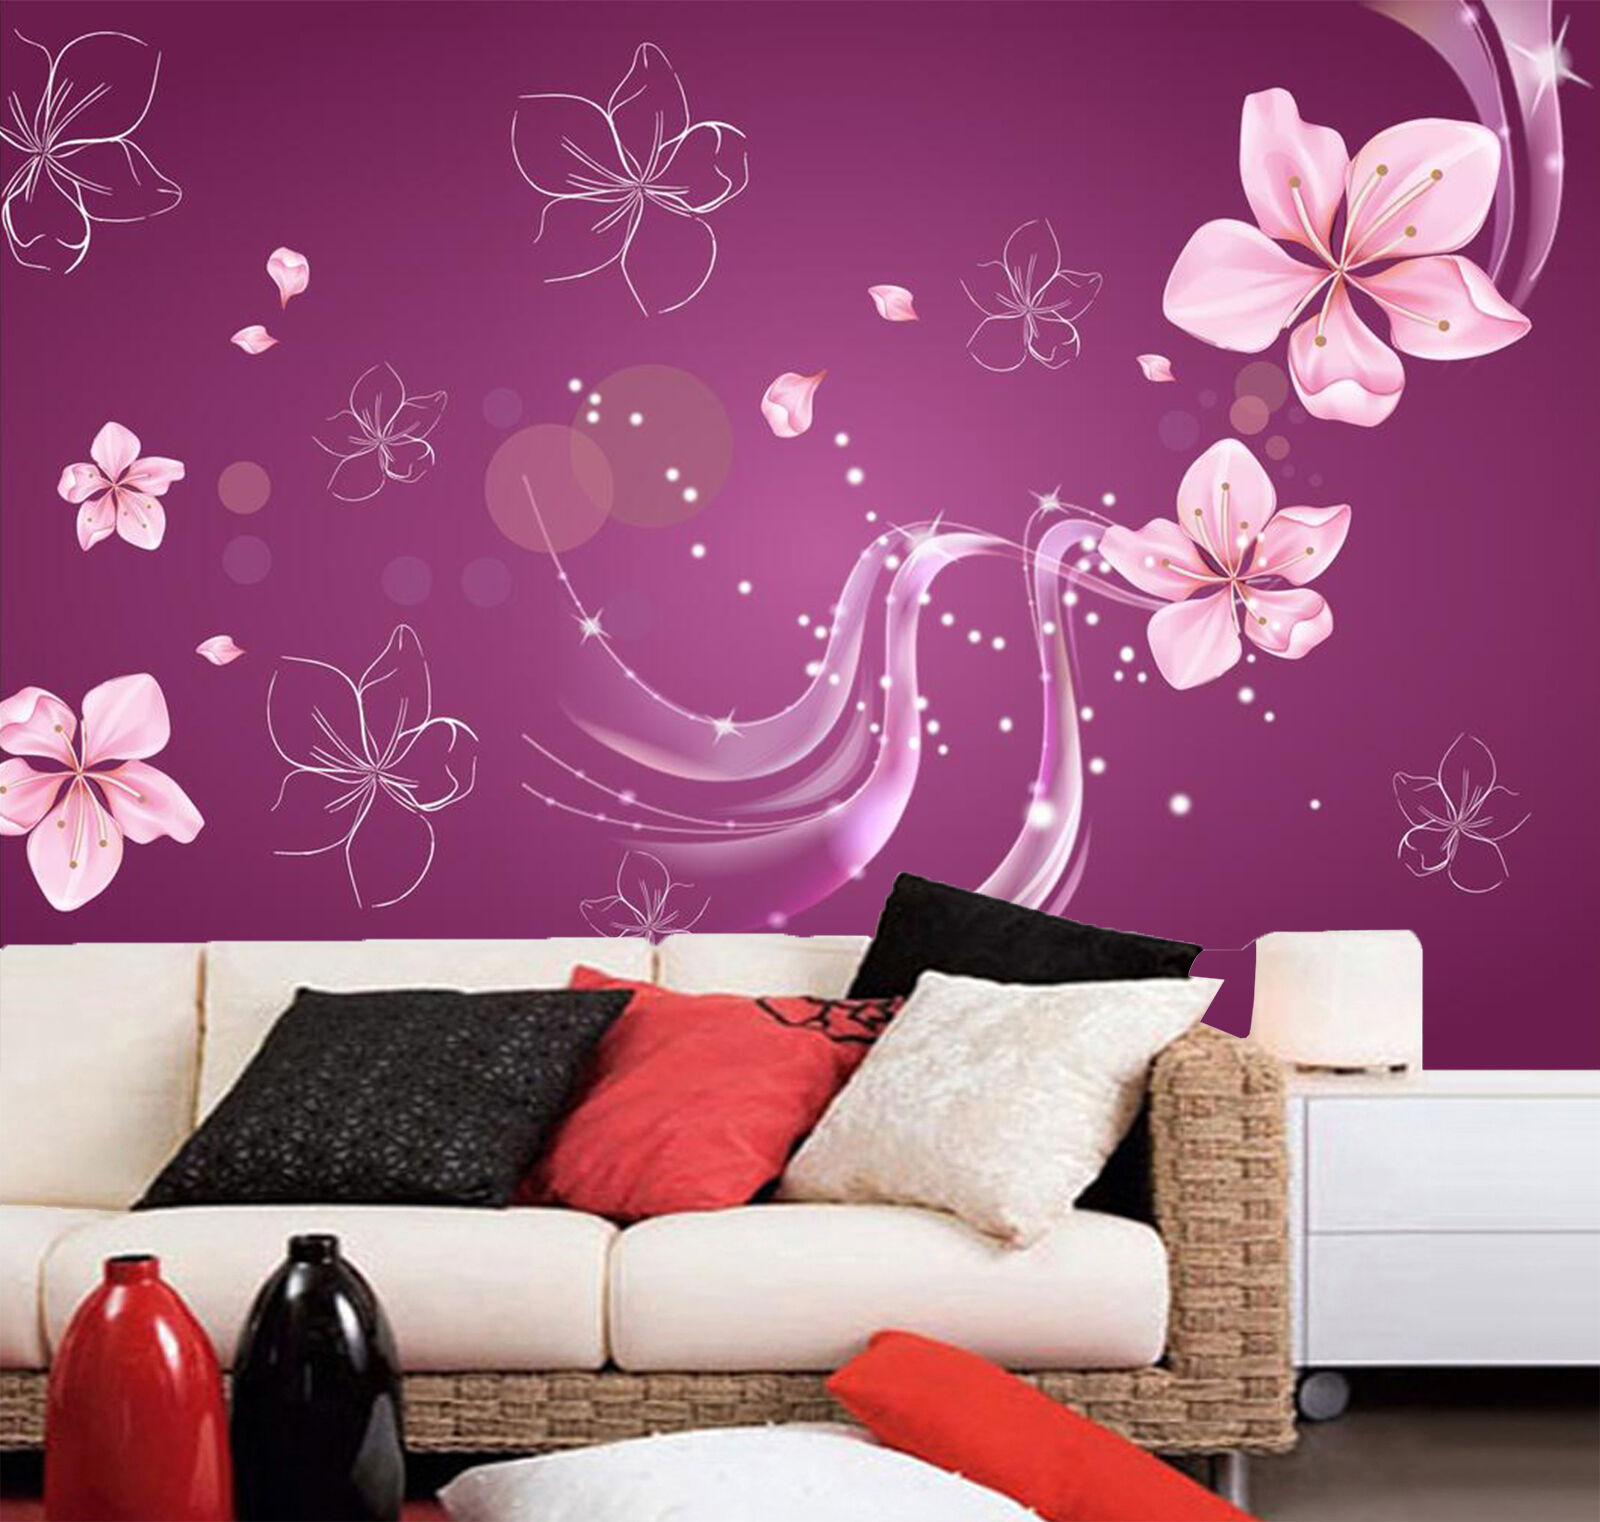 3D Bright flowers 3452 Wall Paper Wall Print Decal Wall Deco Indoor Wall Murals